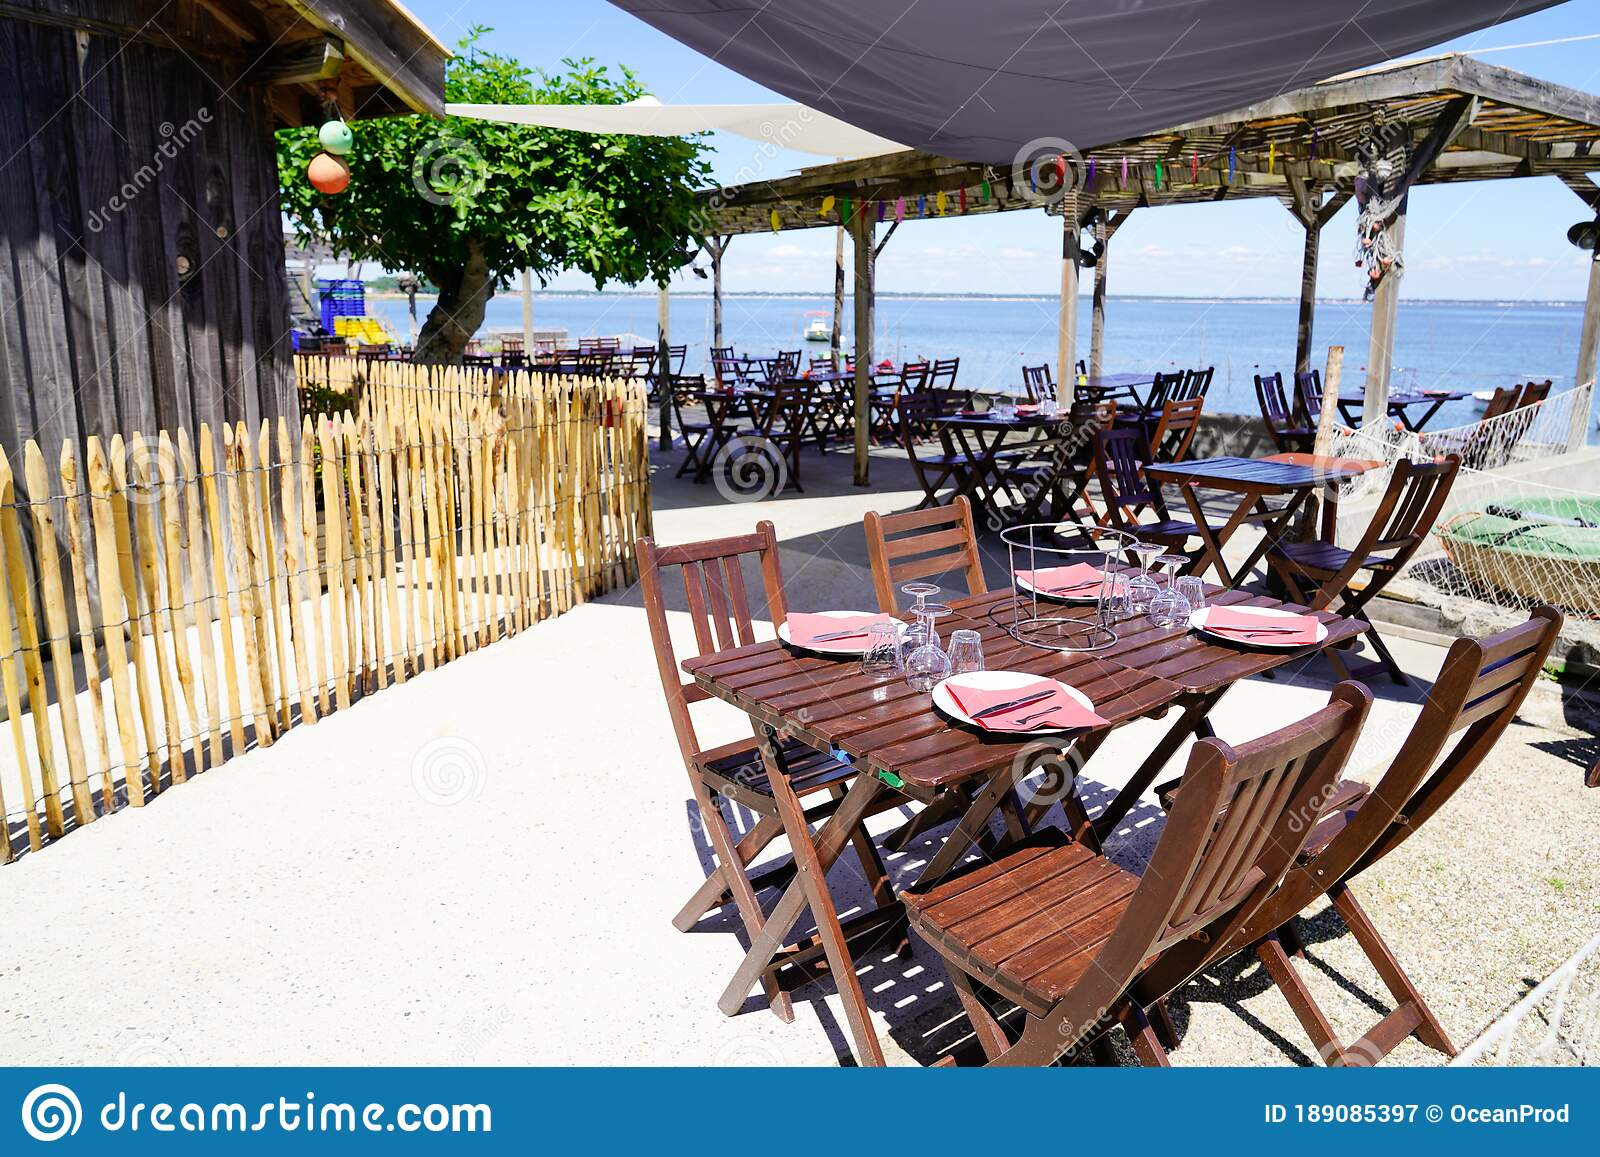 Beach Terrace Oyster Restaurant In Seaside With Empty Chairs And Wood Table On Typical Village Of L Herbe In Cap Ferret France Stock Image Image Of Holiday Edge 189085397